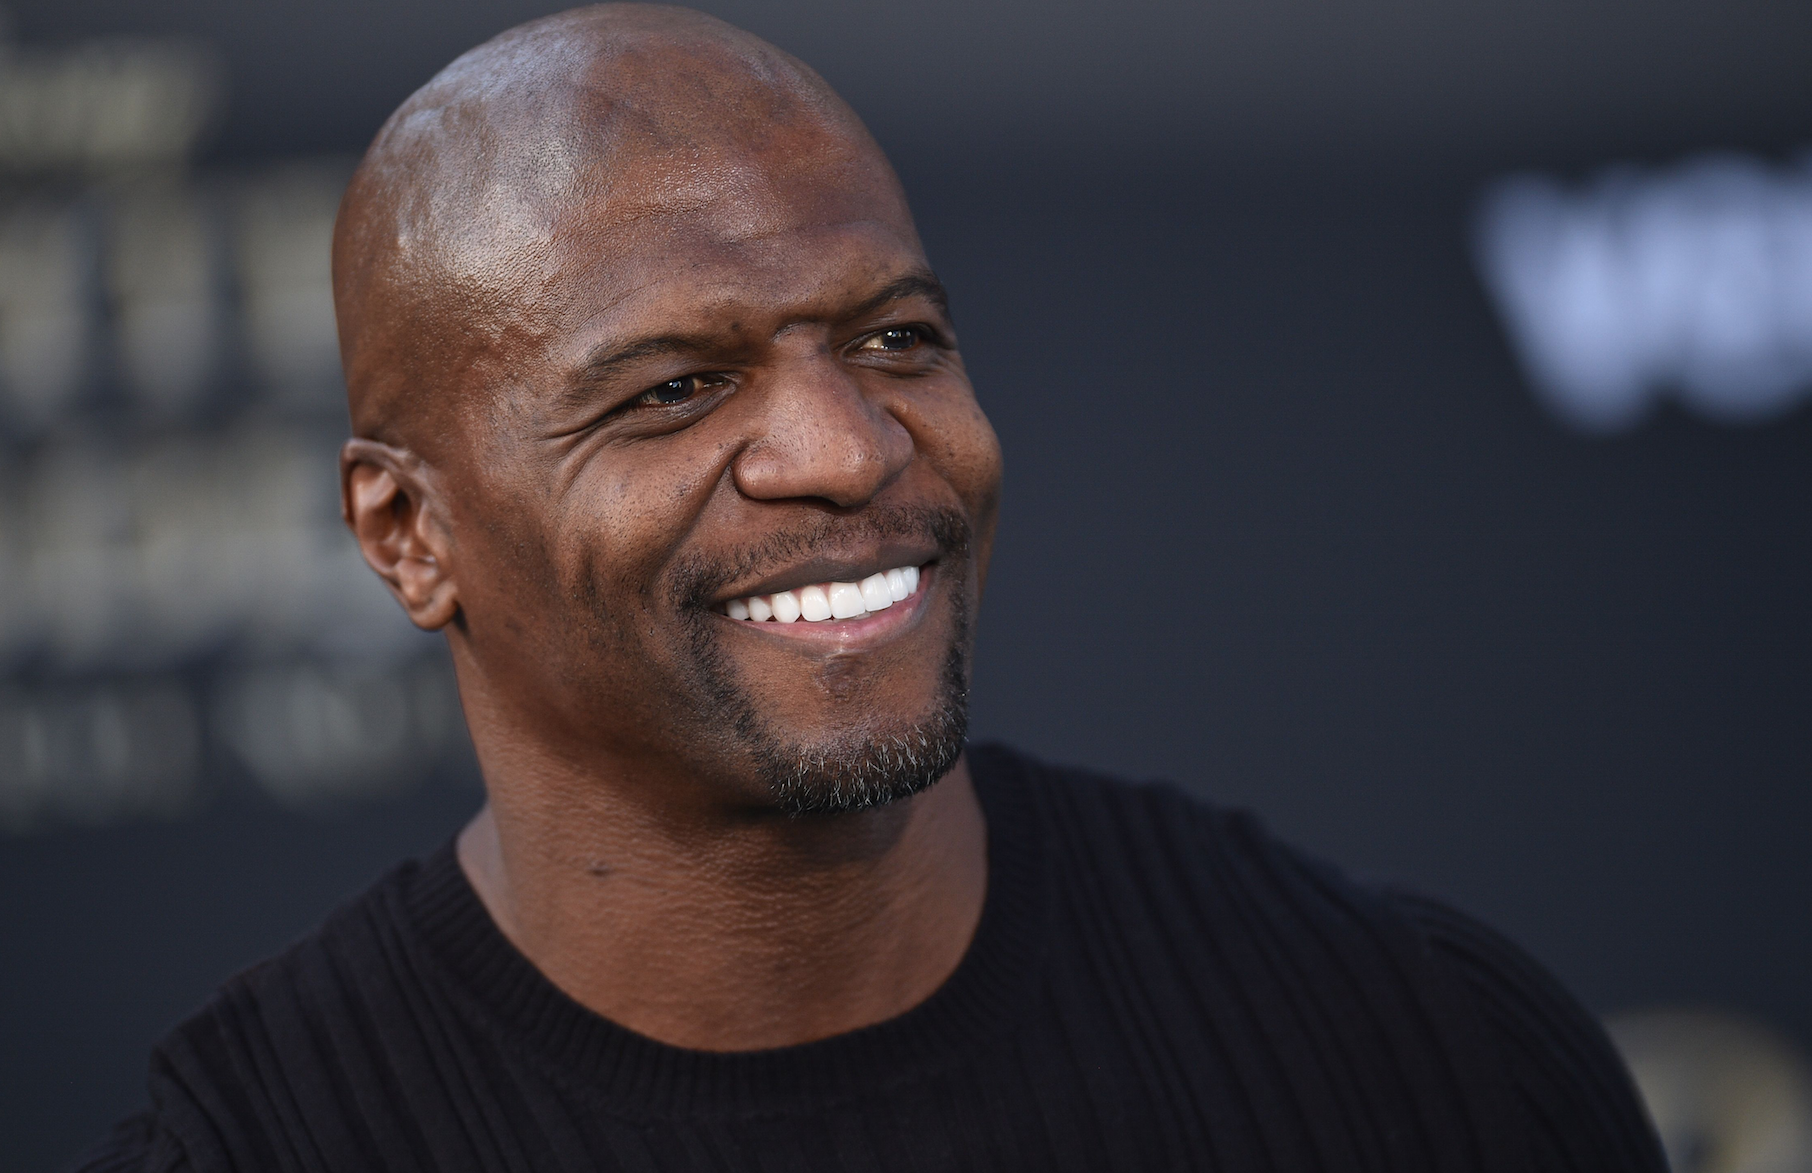 Terry Crews Implies He's Being Pressured to Drop His Sexual Assault Lawsuit